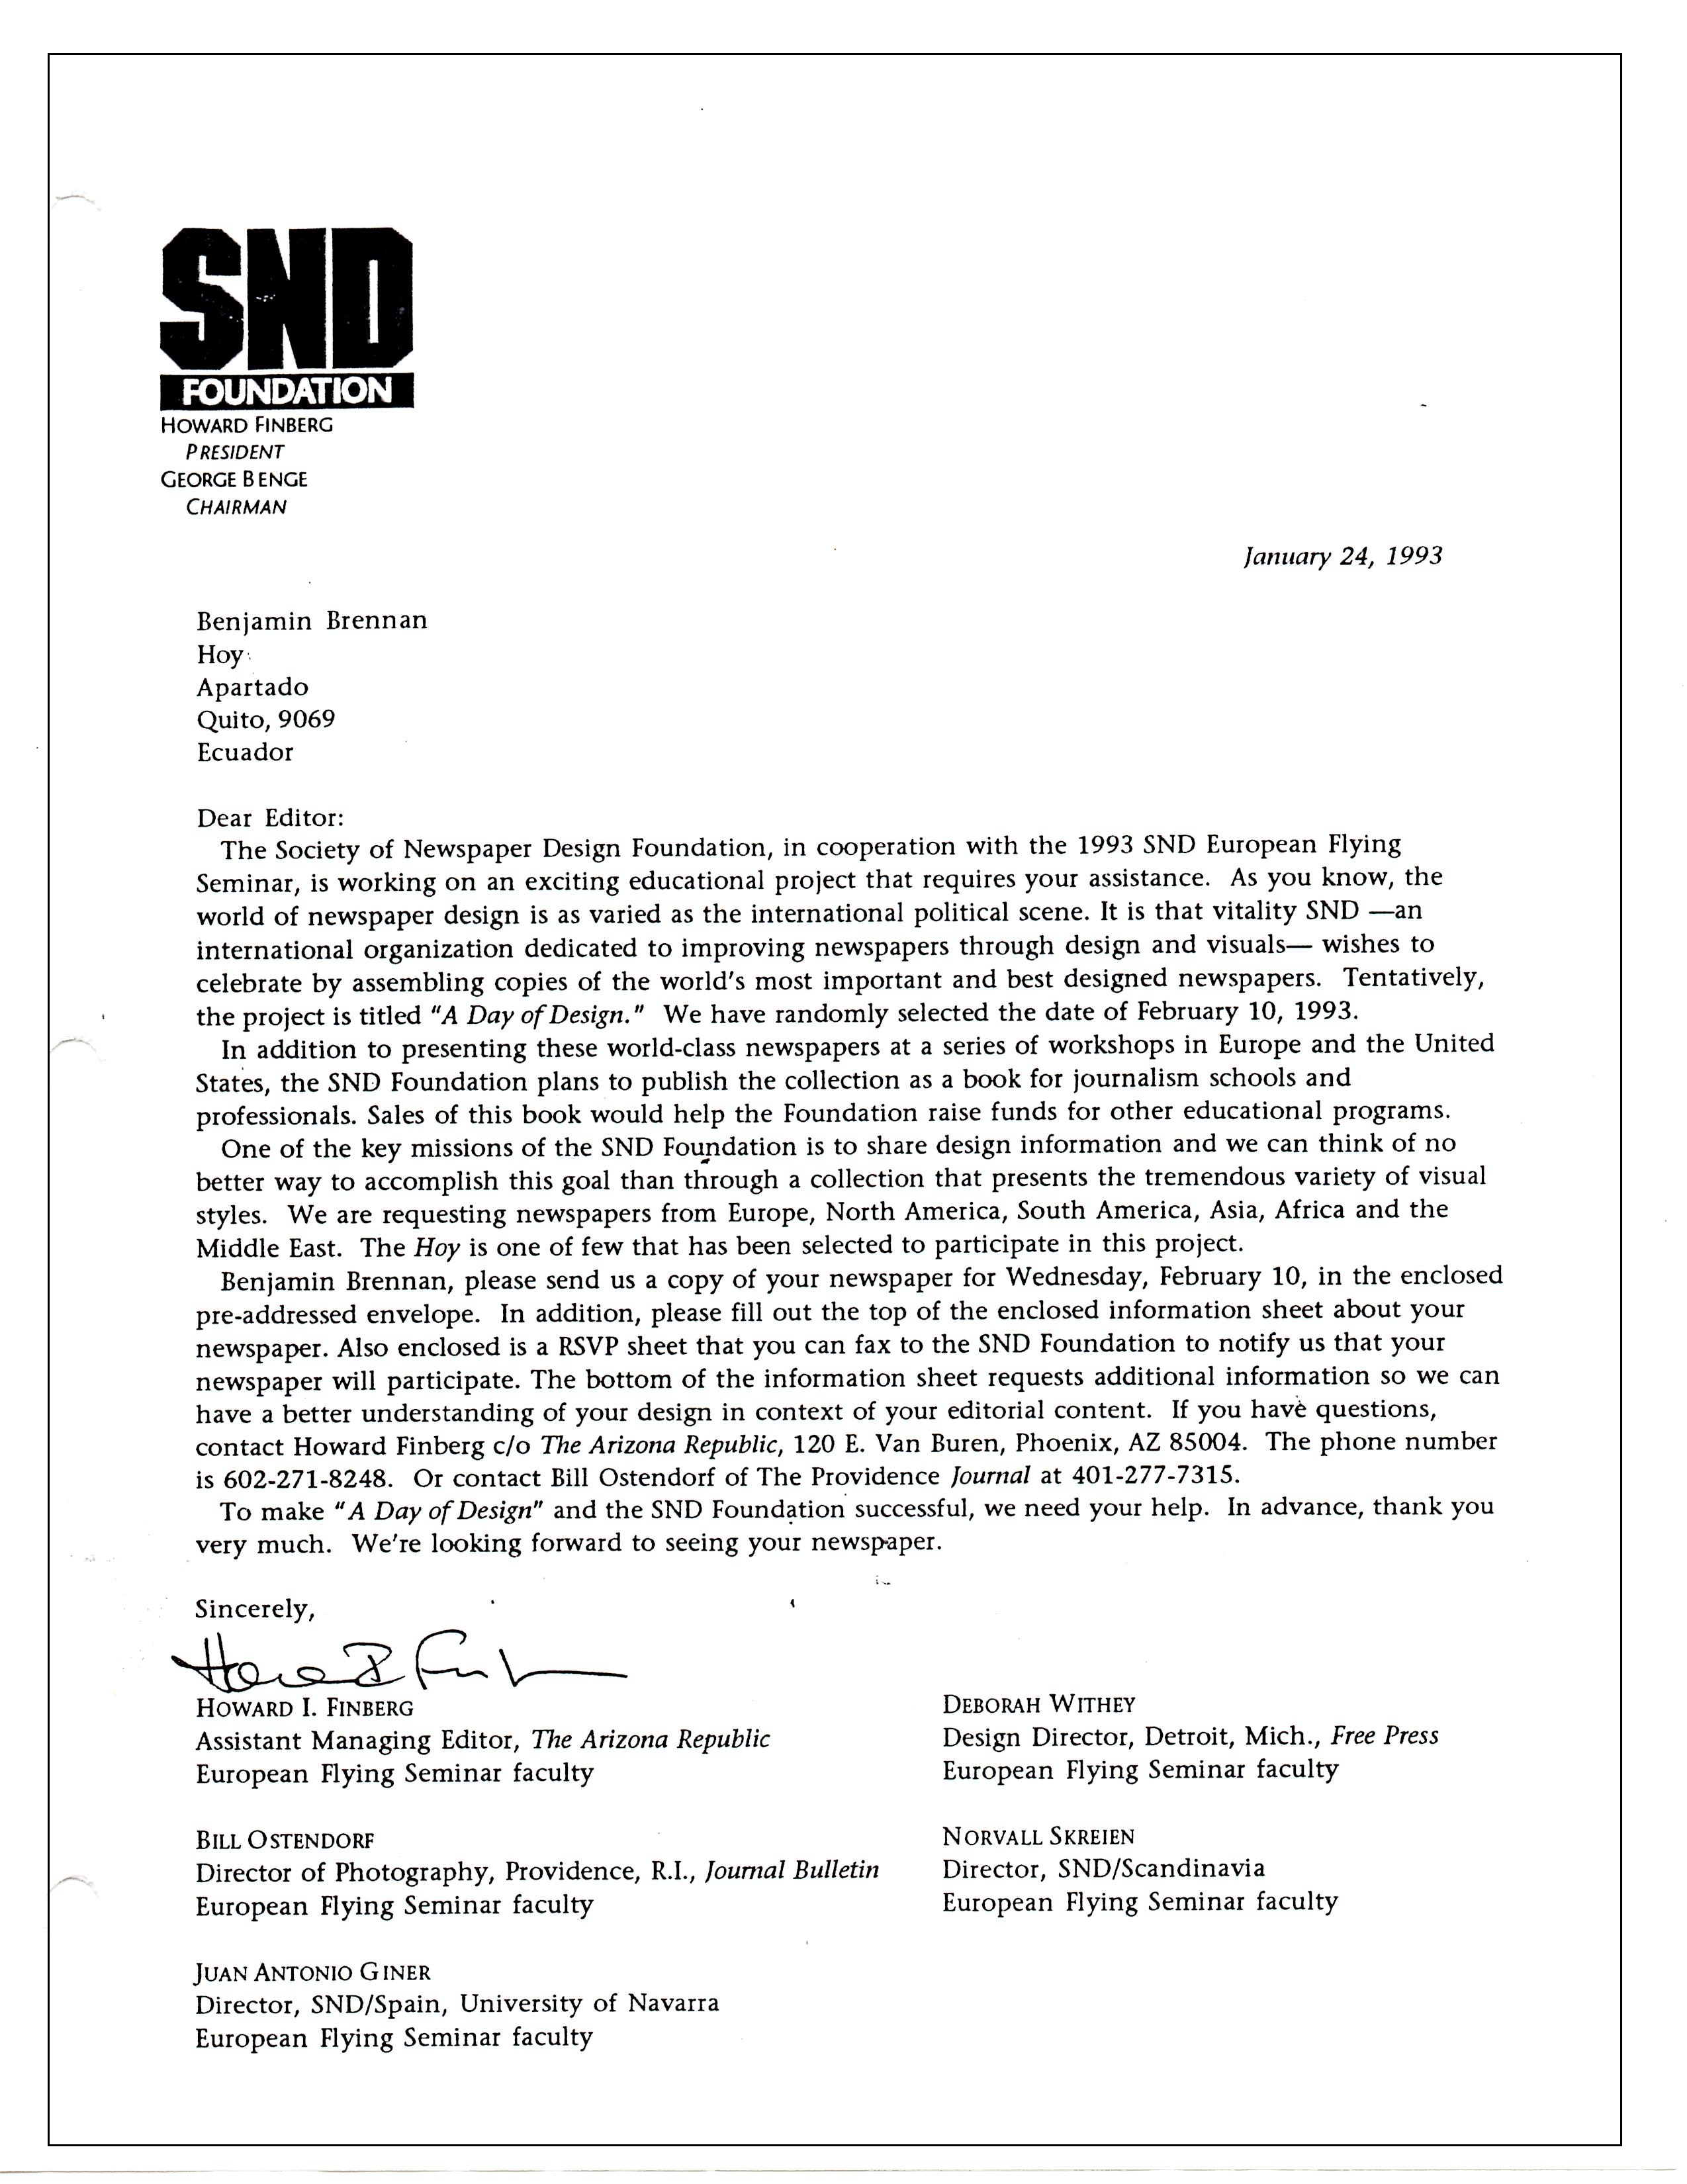 Designofdesign request letter 1993 newsroom history designofdesign request letter 1993 thecheapjerseys Image collections